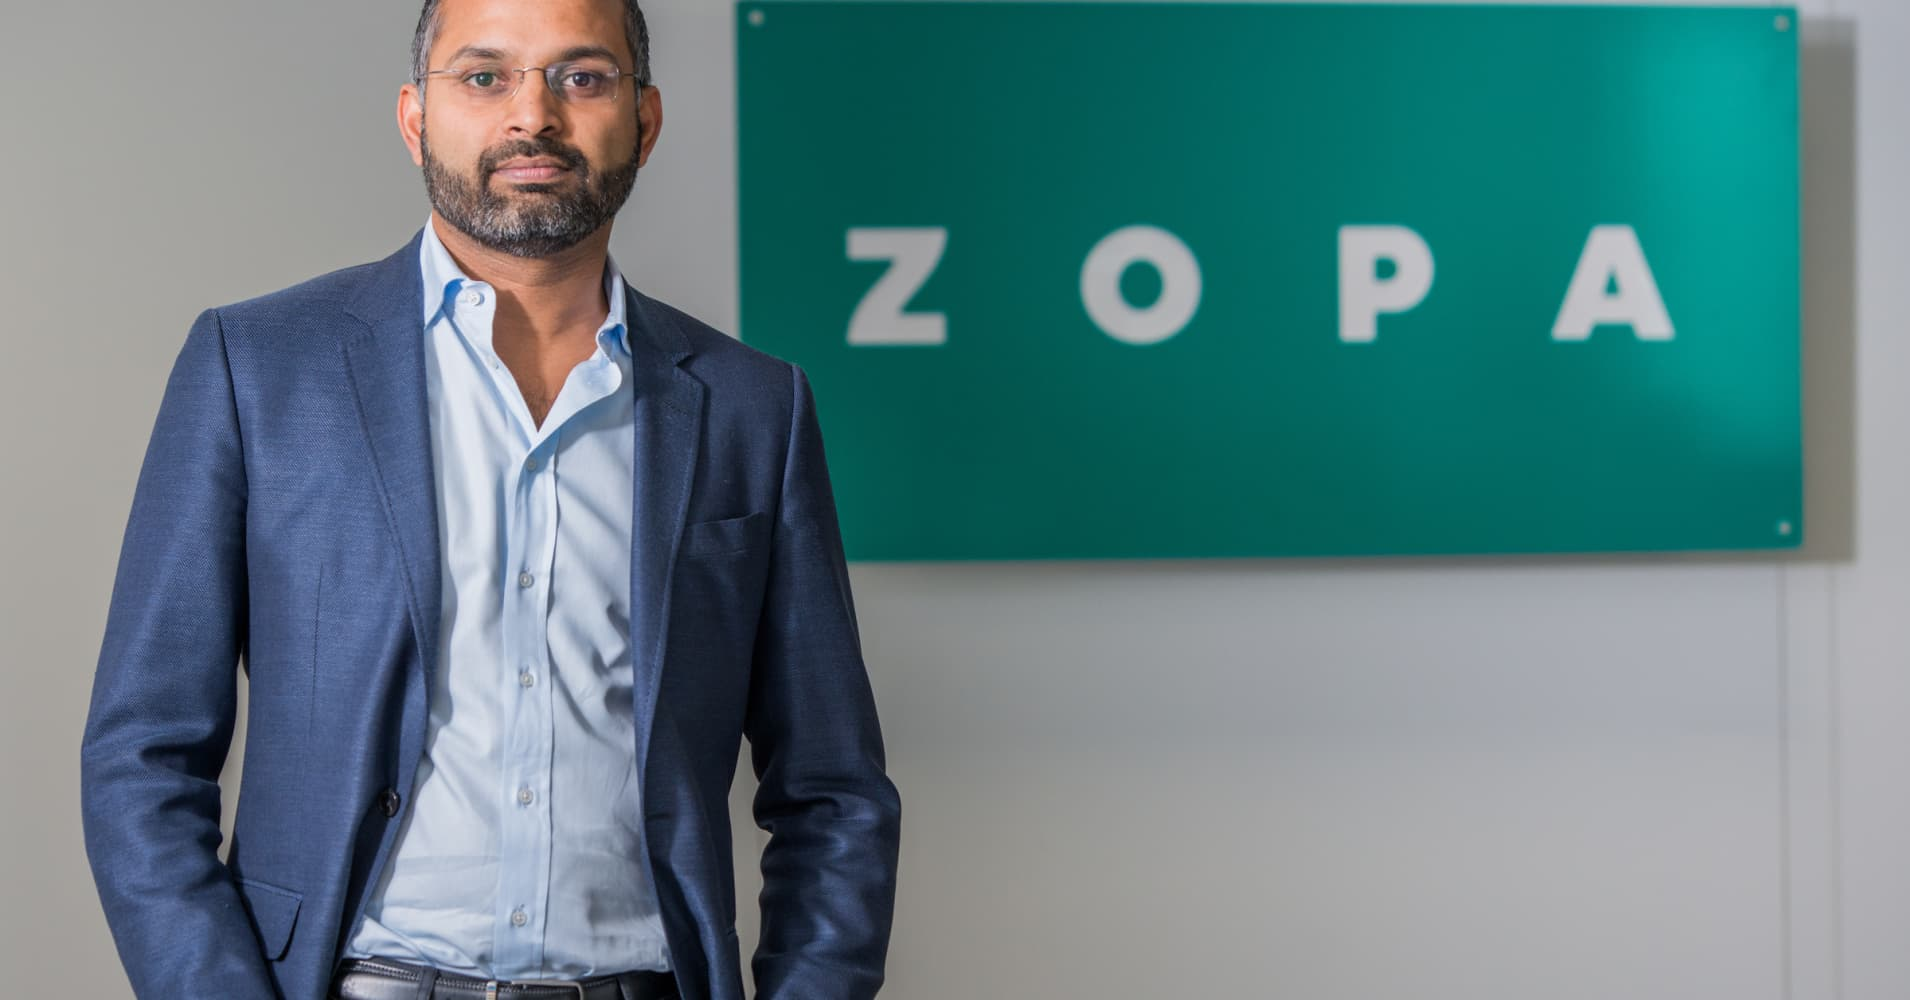 Peer-to-peer lender Zopa to seek more funding in 2019 as it opens its own bank